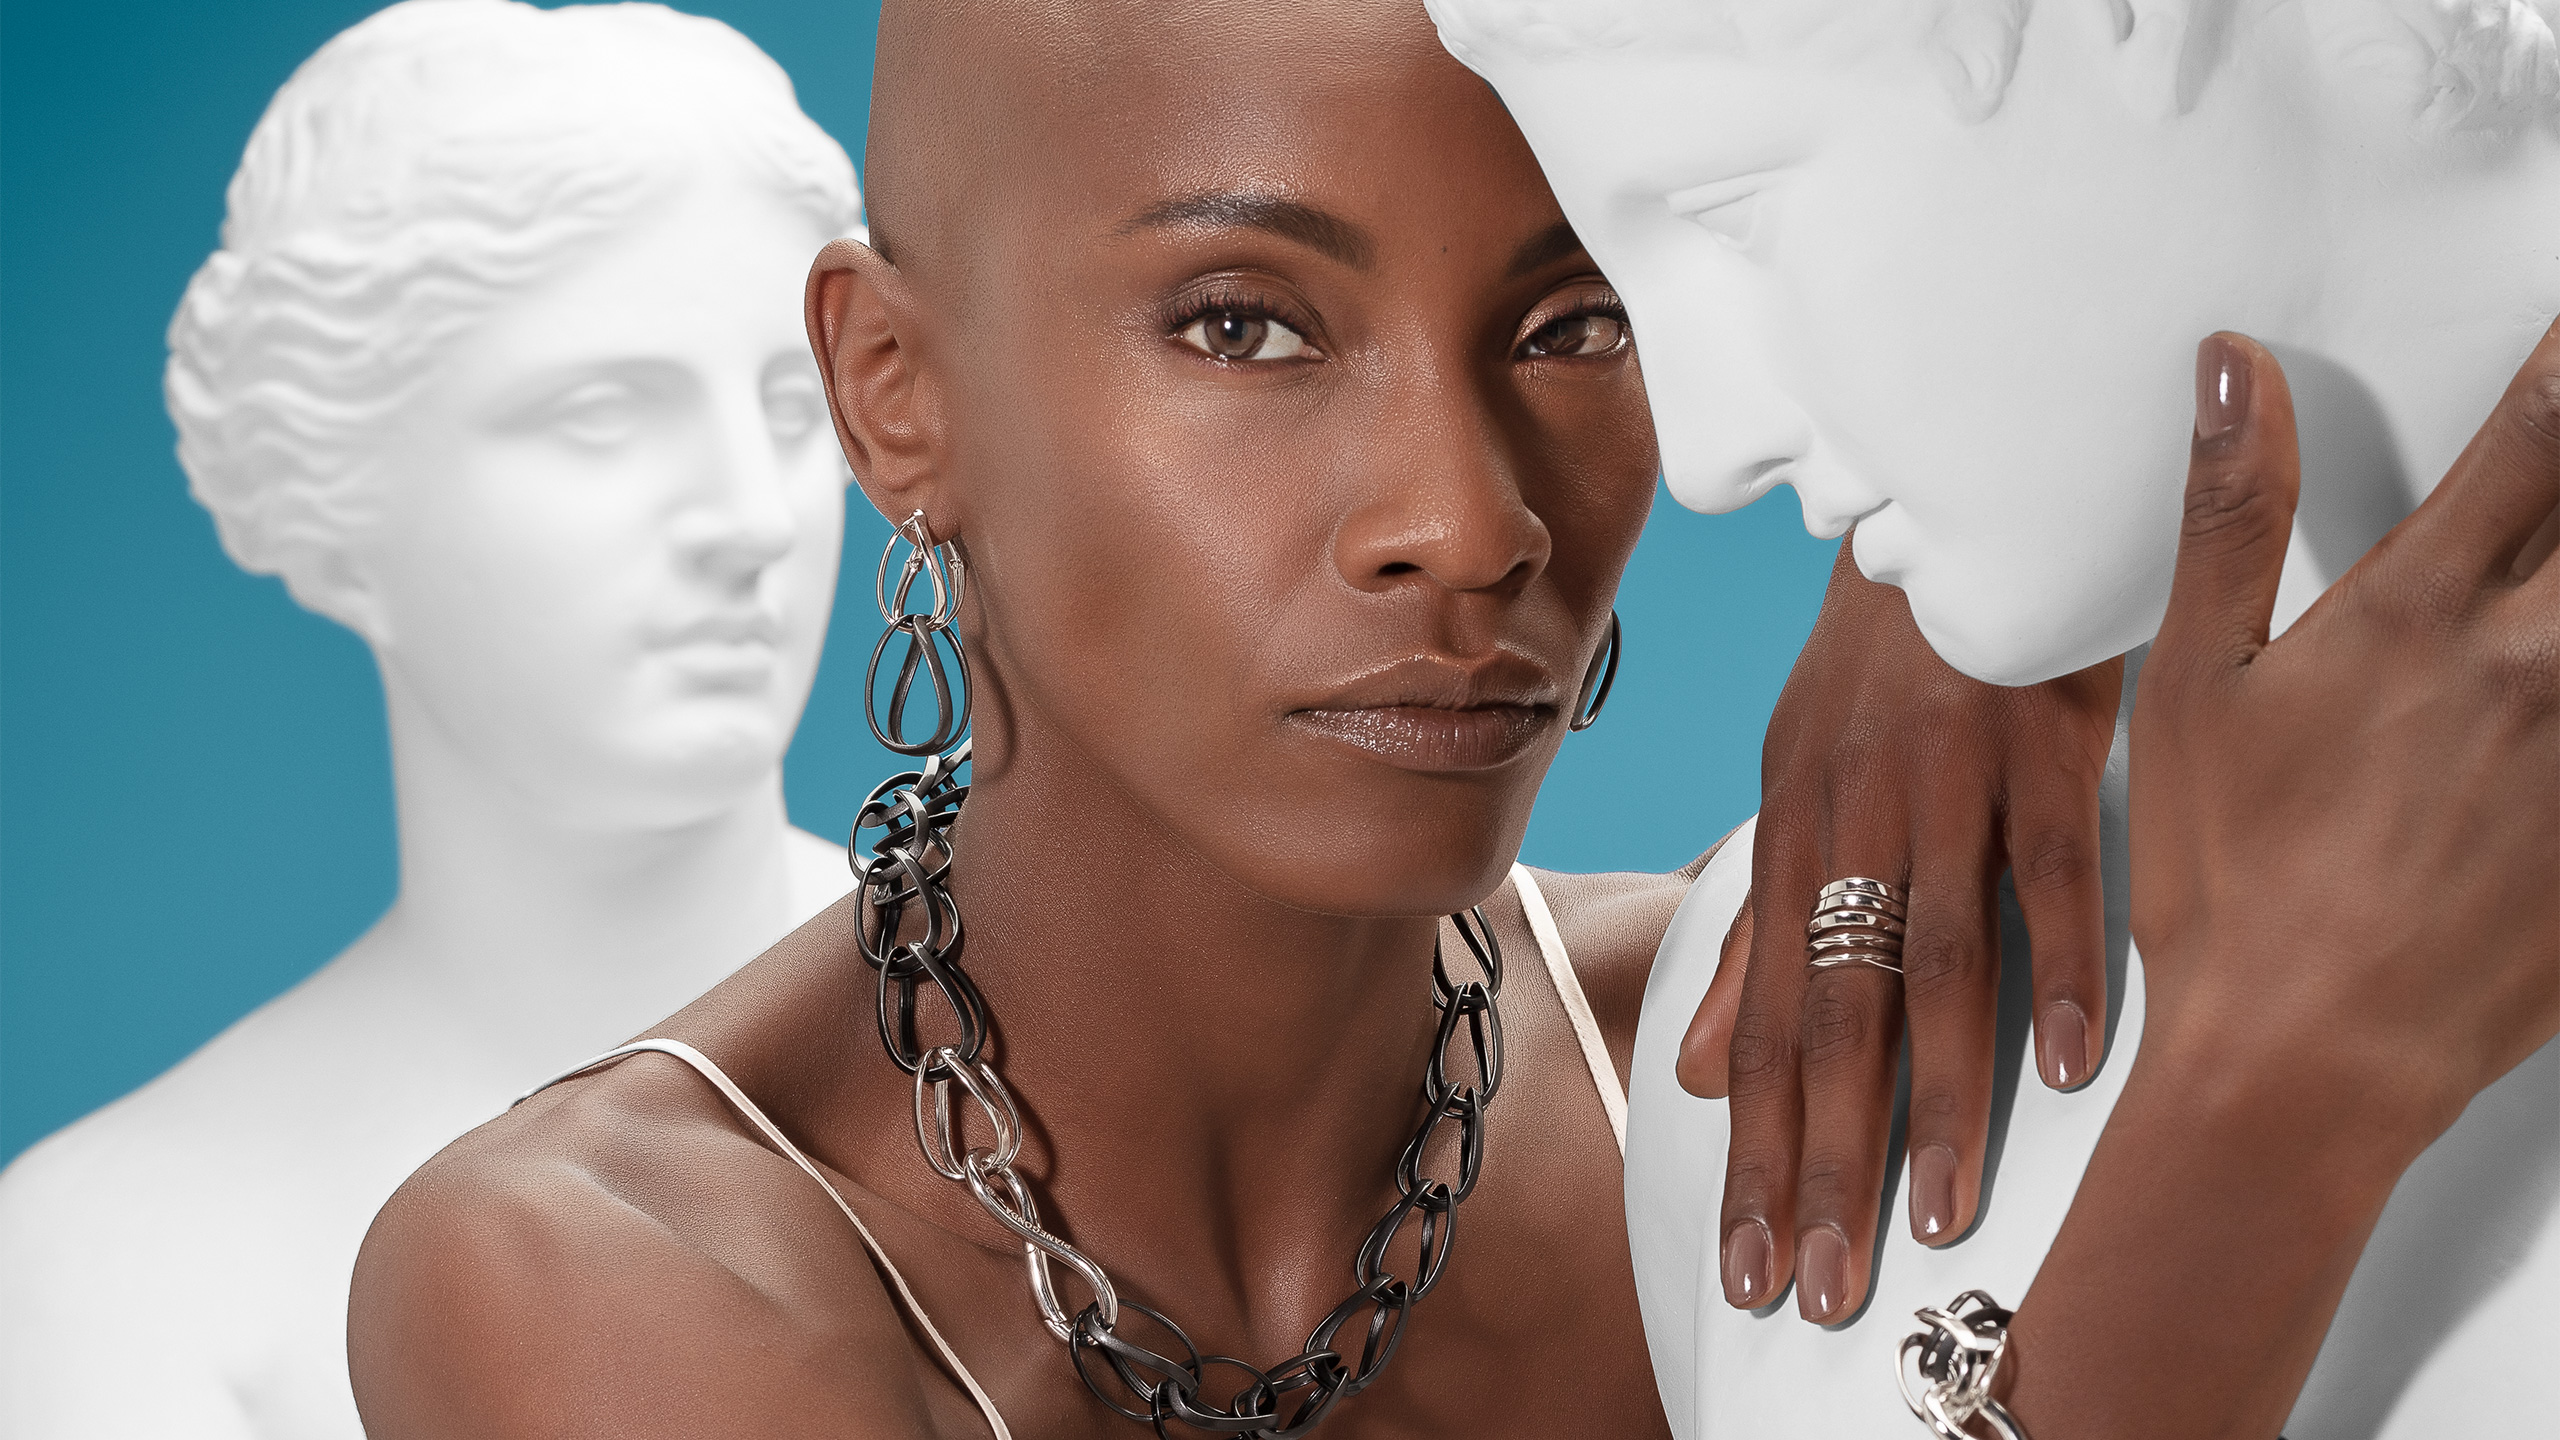 black woman with black necklace, black earrings and ring from Tecum collection